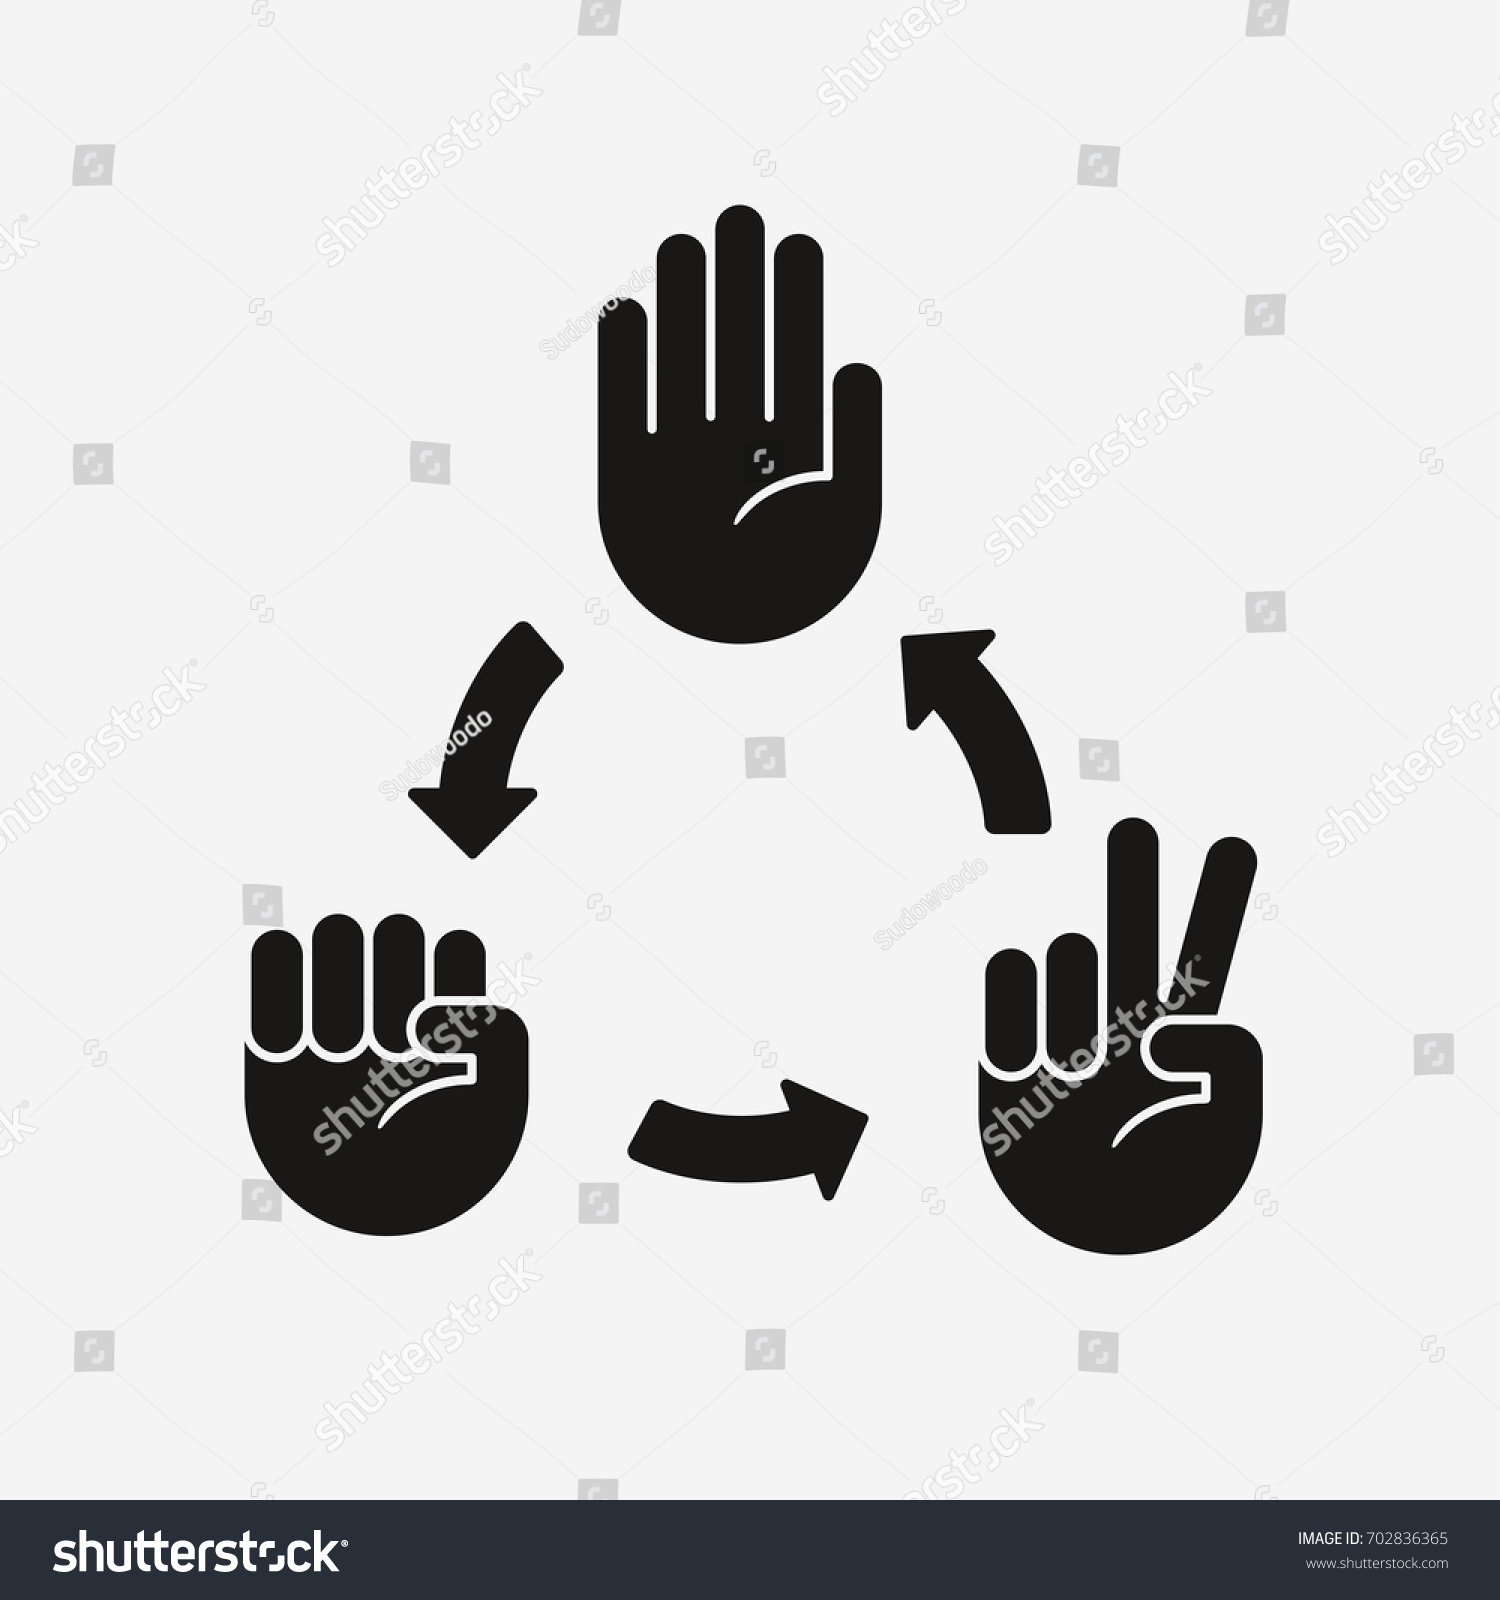 Rock paper scissors game diagram hand stock vector 702836365 rock paper scissors game diagram hand icons with arrows showing which gesture wins pooptronica Choice Image